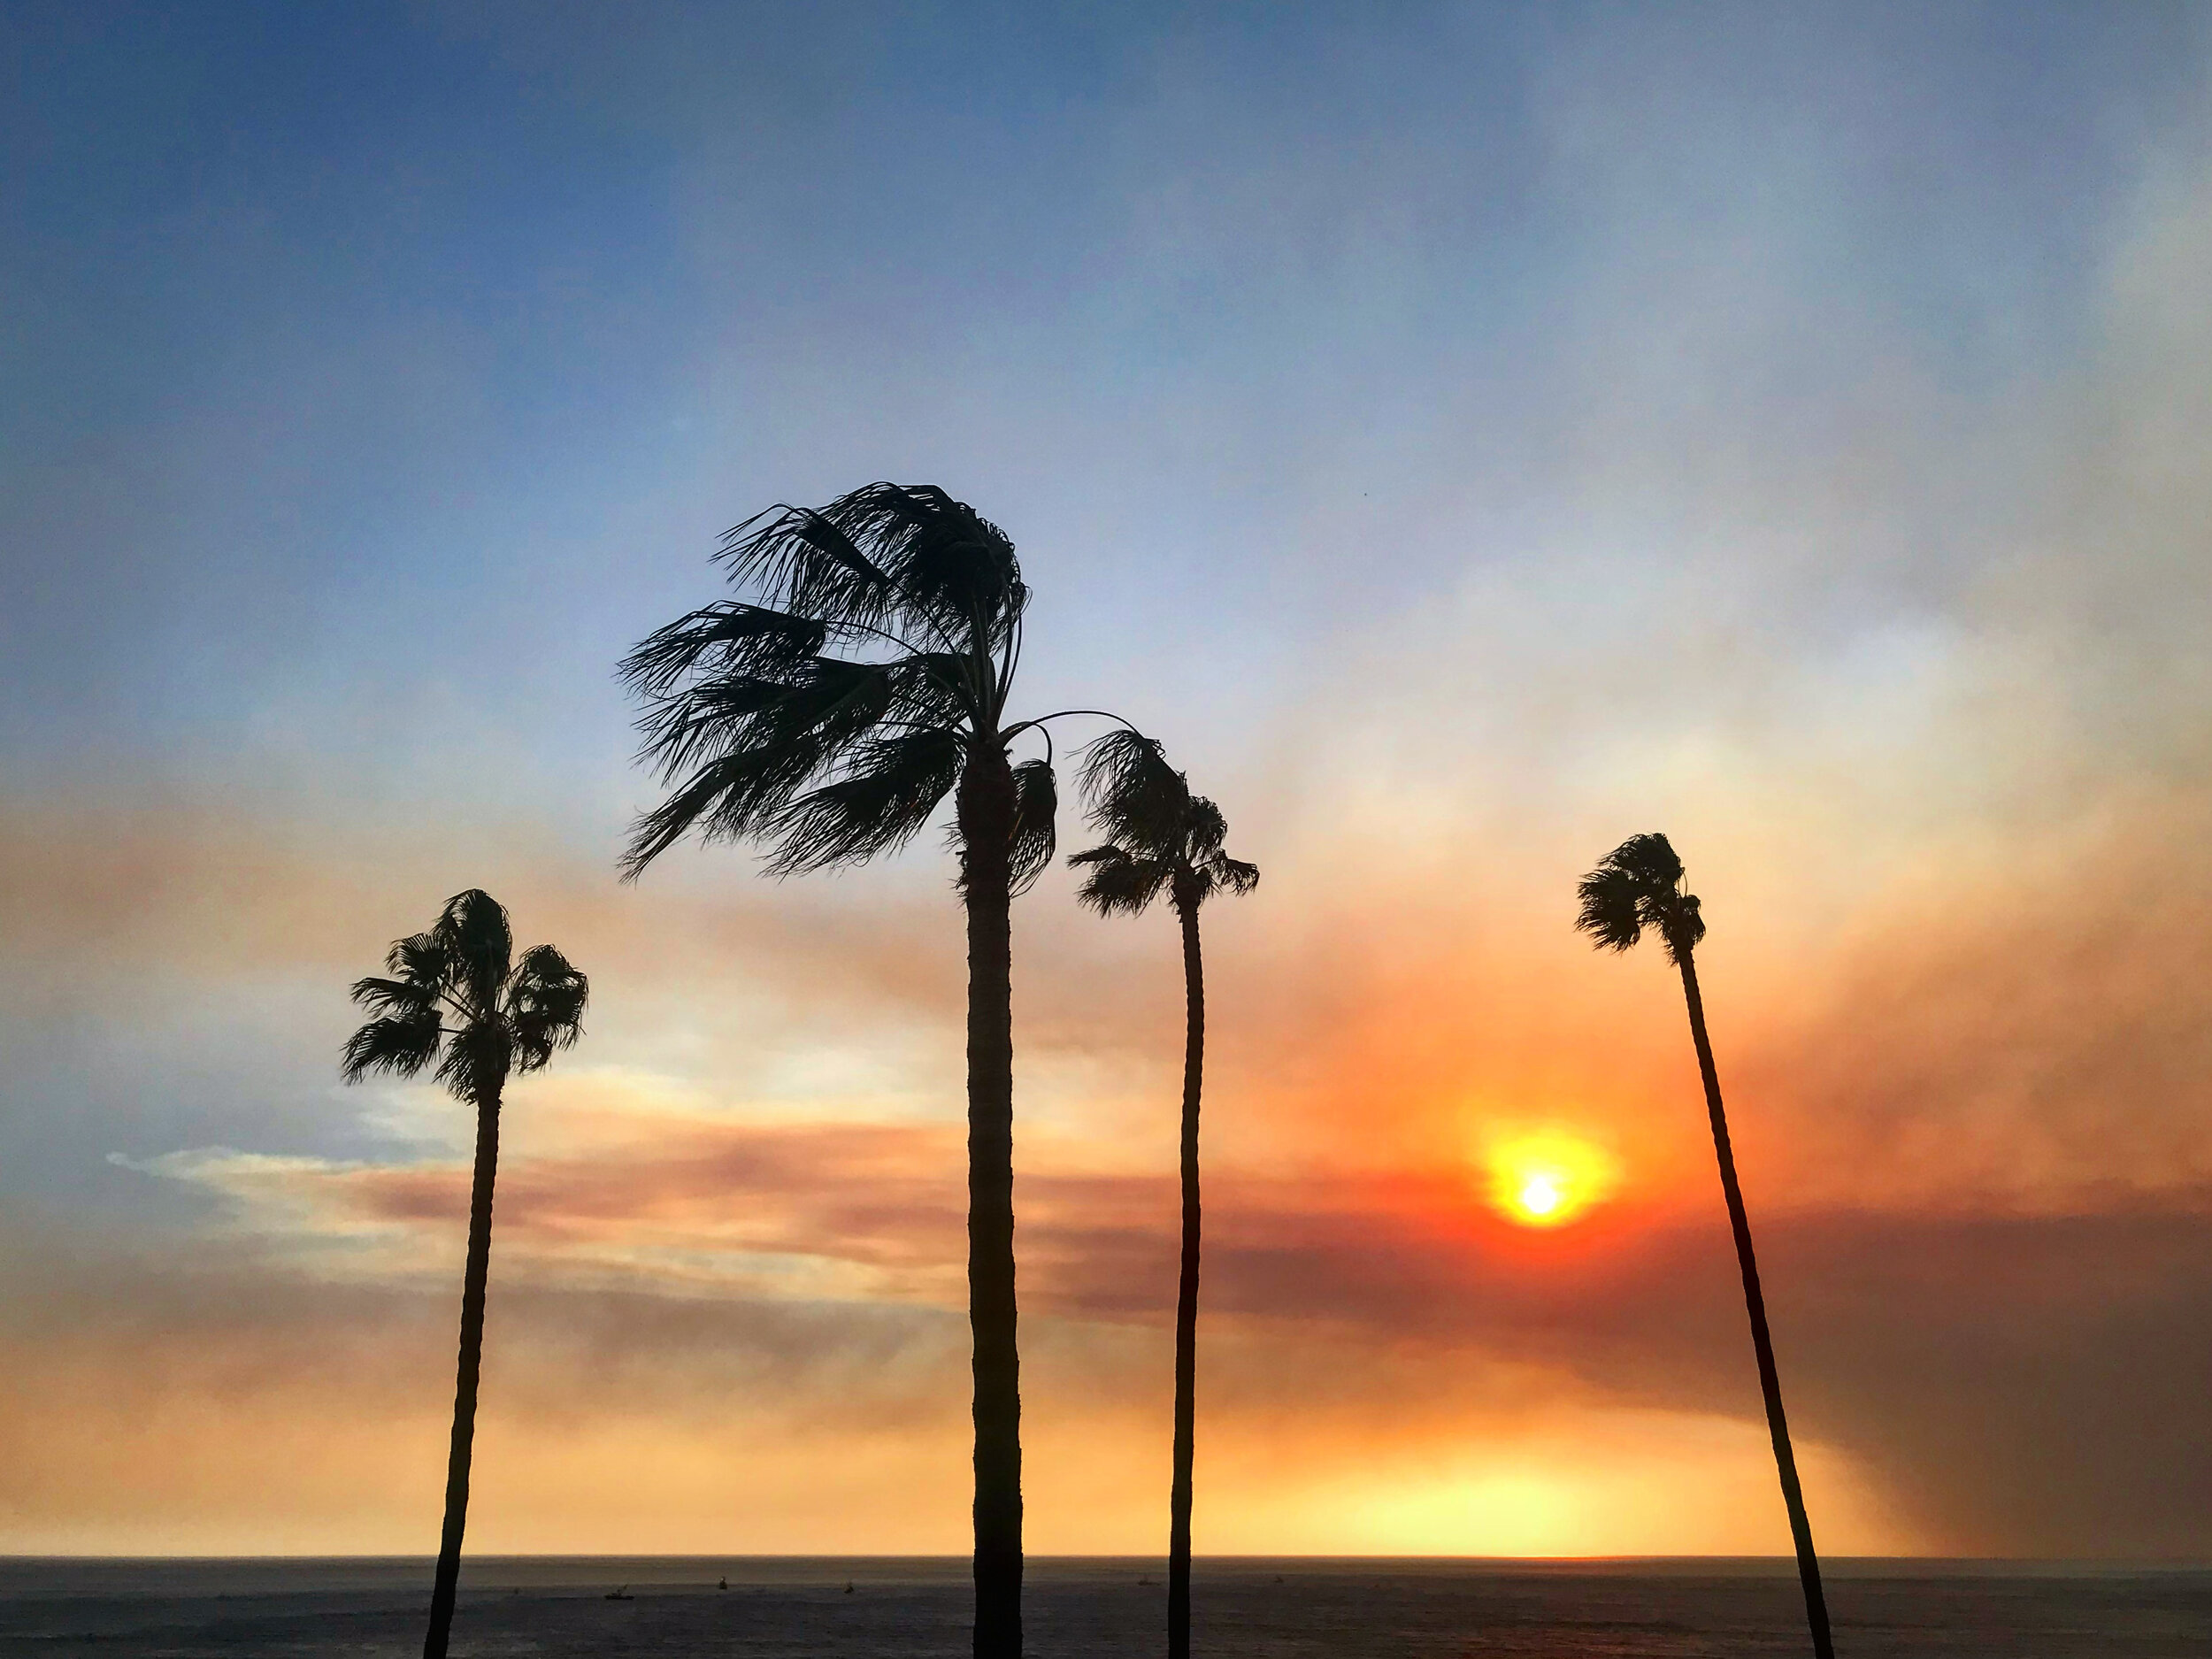 4:03pm - November 8, 2018 - Smoke from the Hill Fire in Ventura County making its presence known over the Pacific Ocean. (📷: Lisa Butala Zabaldo)